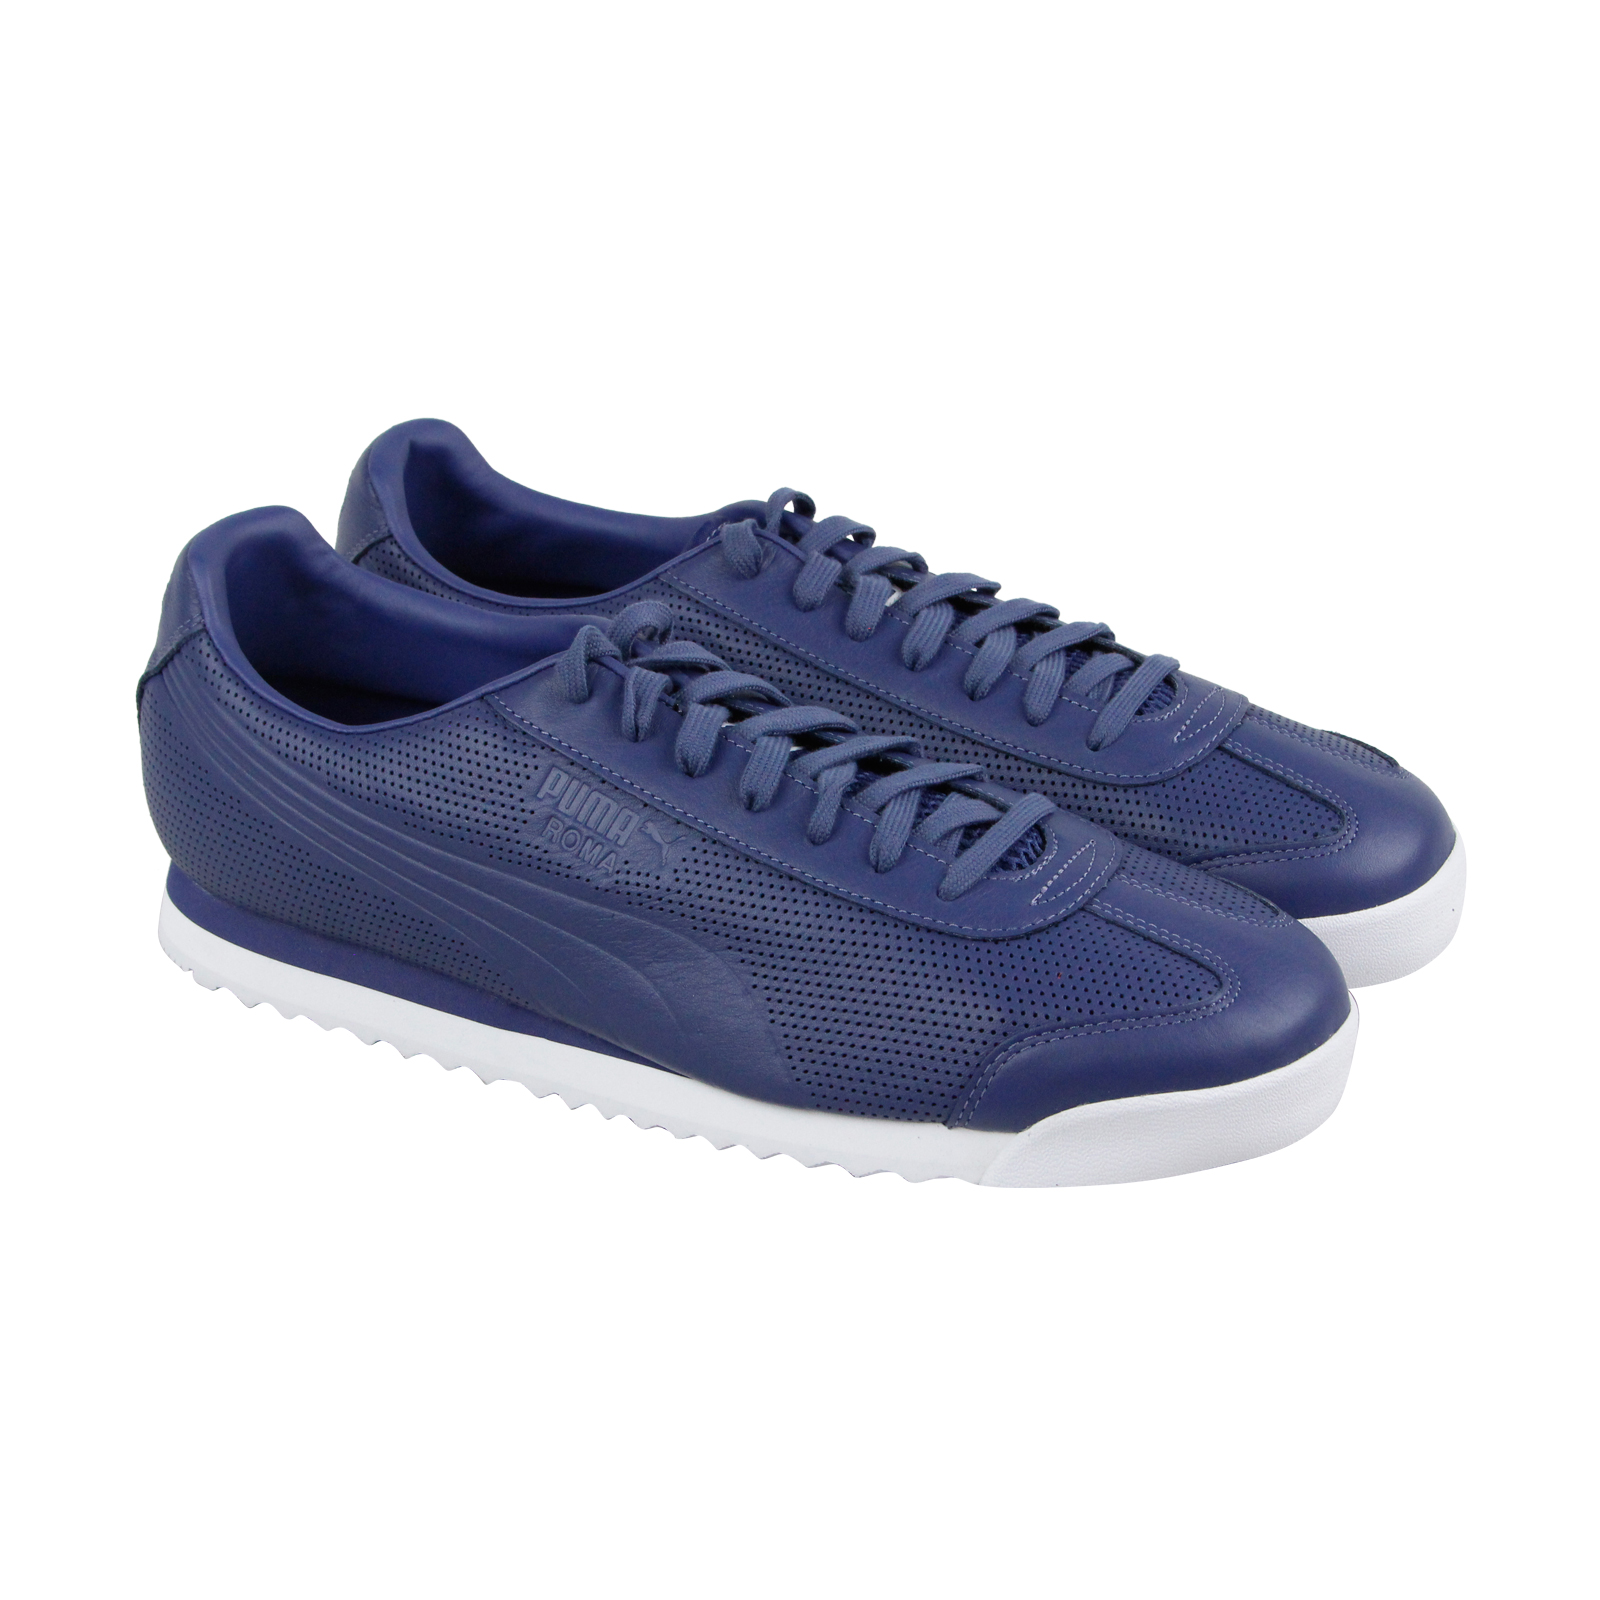 Scarpe casual da uomo Puma Roma Dlx Perf uomos Blue Leather Lace Up Sneakers Shoes